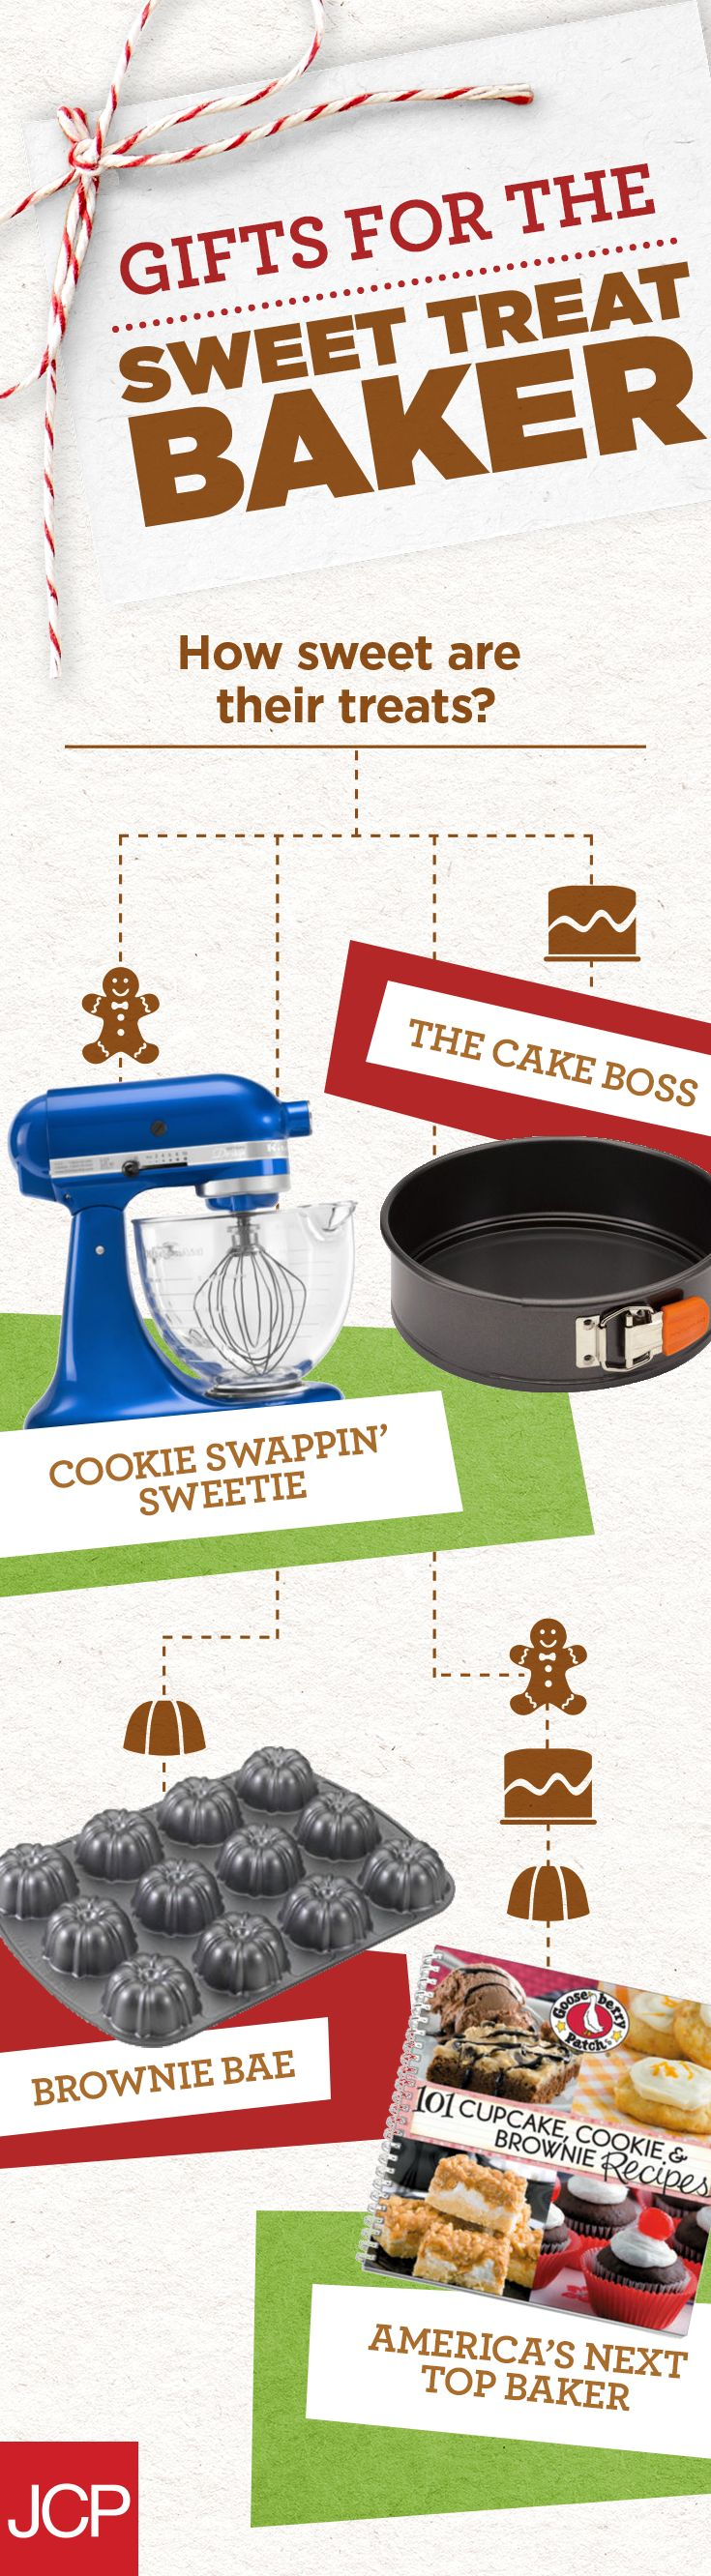 Give the gift of sugar, spice, and everything nice. Whether they're perfecting their holiday recipes (mmm, bite size brownies) or just baking up some ooey gooey sugar cookies, these Christmas gifts will warm your favorite Baker's heart – and kitchen!